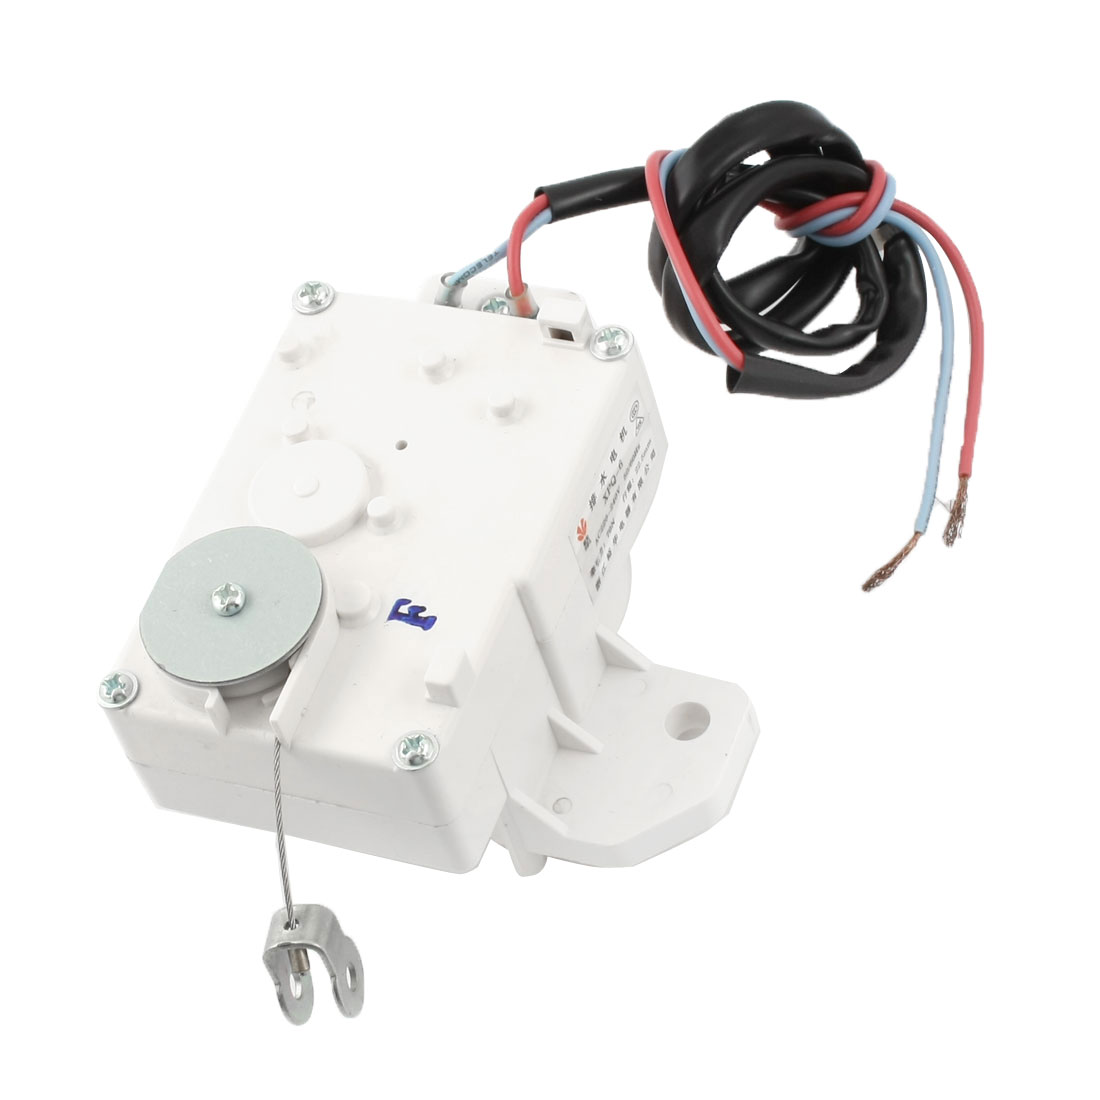 Repair Part 70N Force 22.5mm Stroke Washing Machine Drain Motor Tractor AC 220-240V XPQ-6